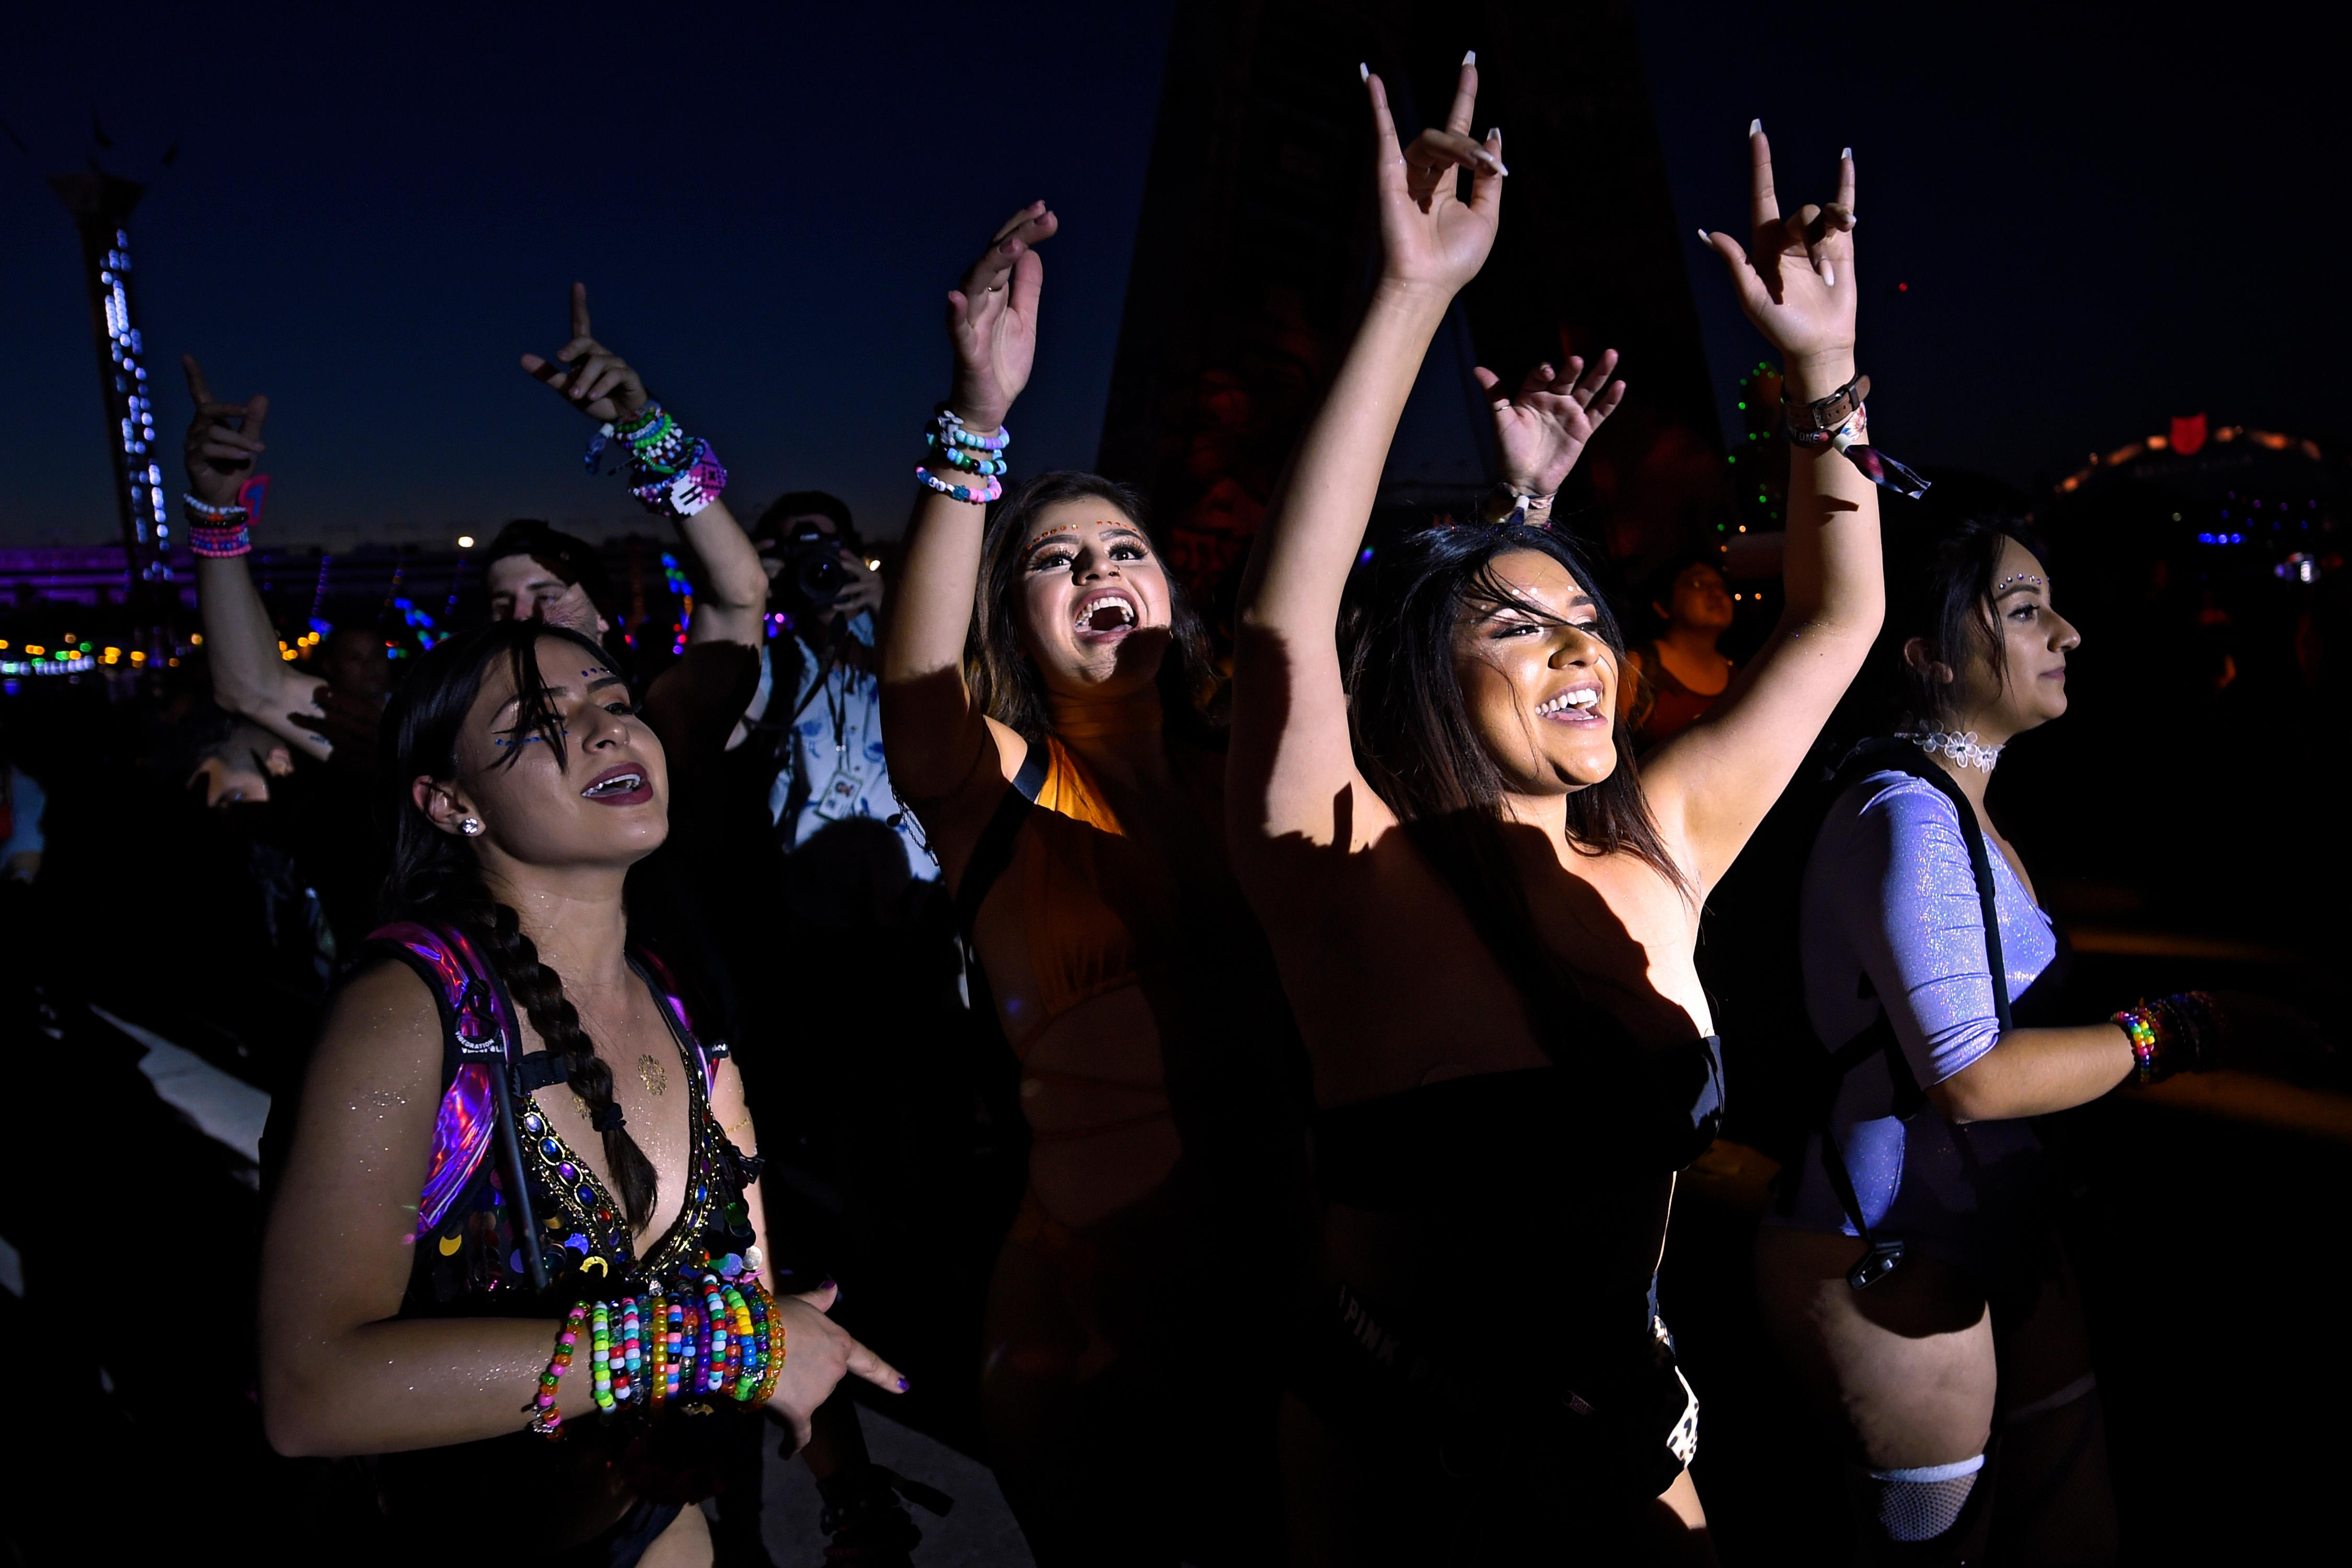 Attendees dance during the first night of the Electric Daisy Carnival Friday, June 16, 2017, at the Las Vegas Motor Speedway. (Sam Morris/Las Vegas News Bureau)